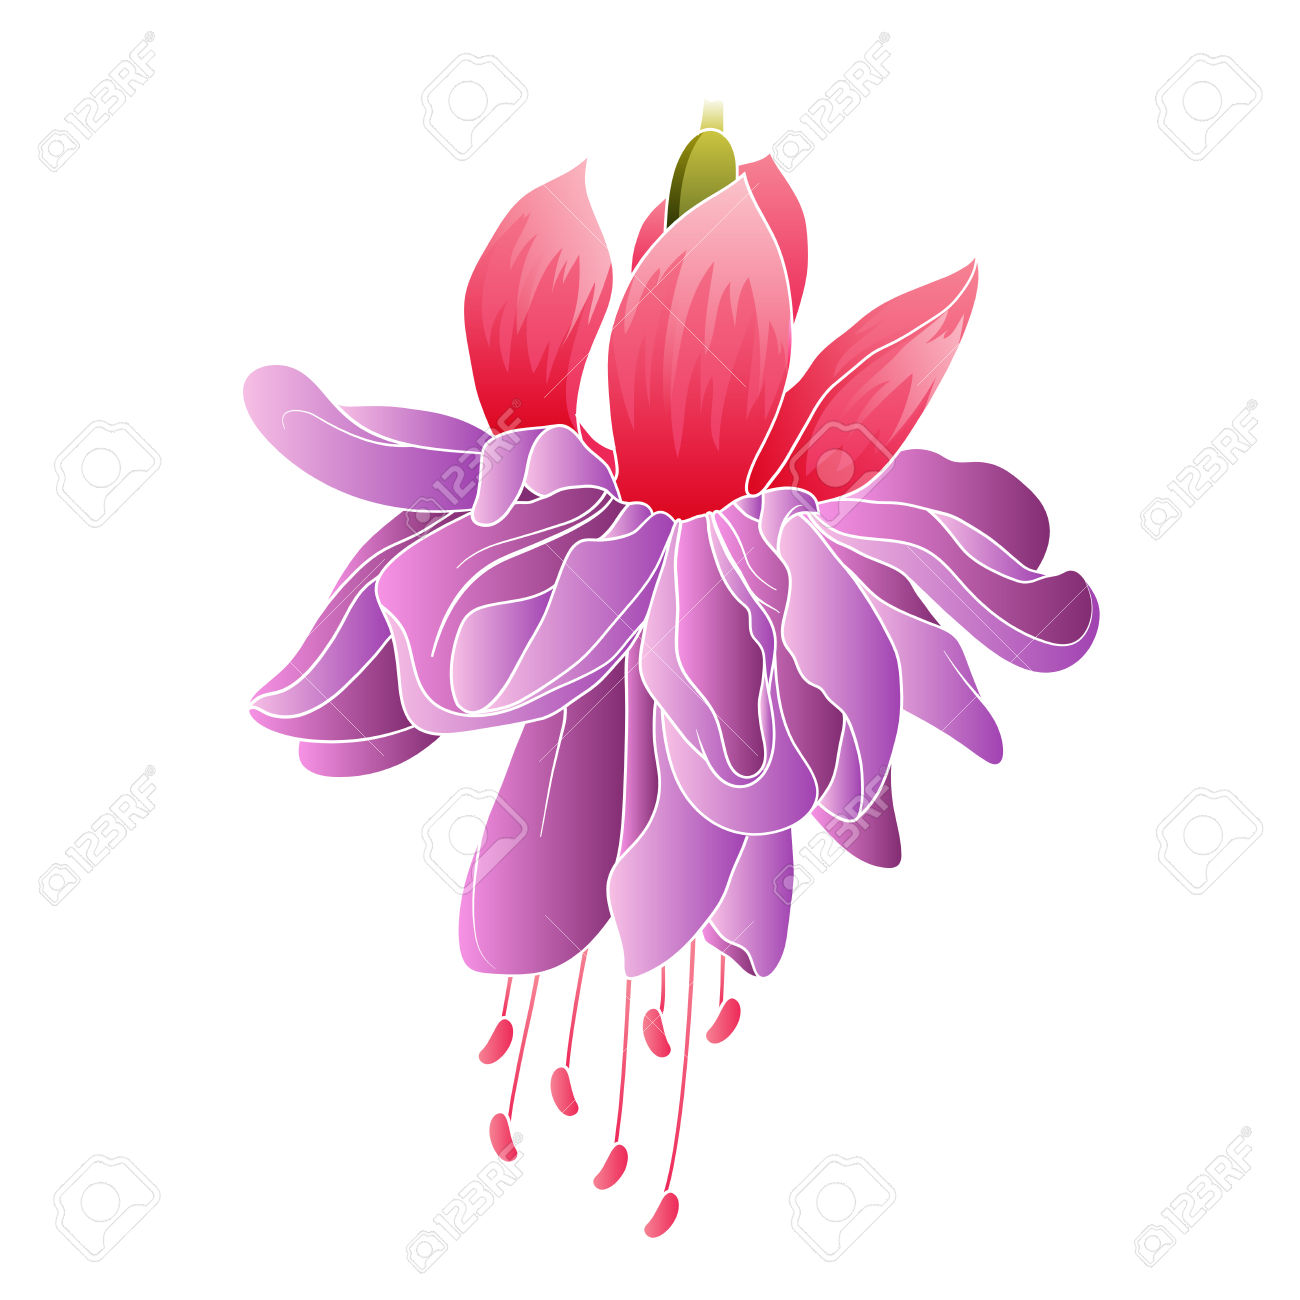 Fuchsia Flower Isolated Royalty Free Cliparts, Vectors, And Stock.